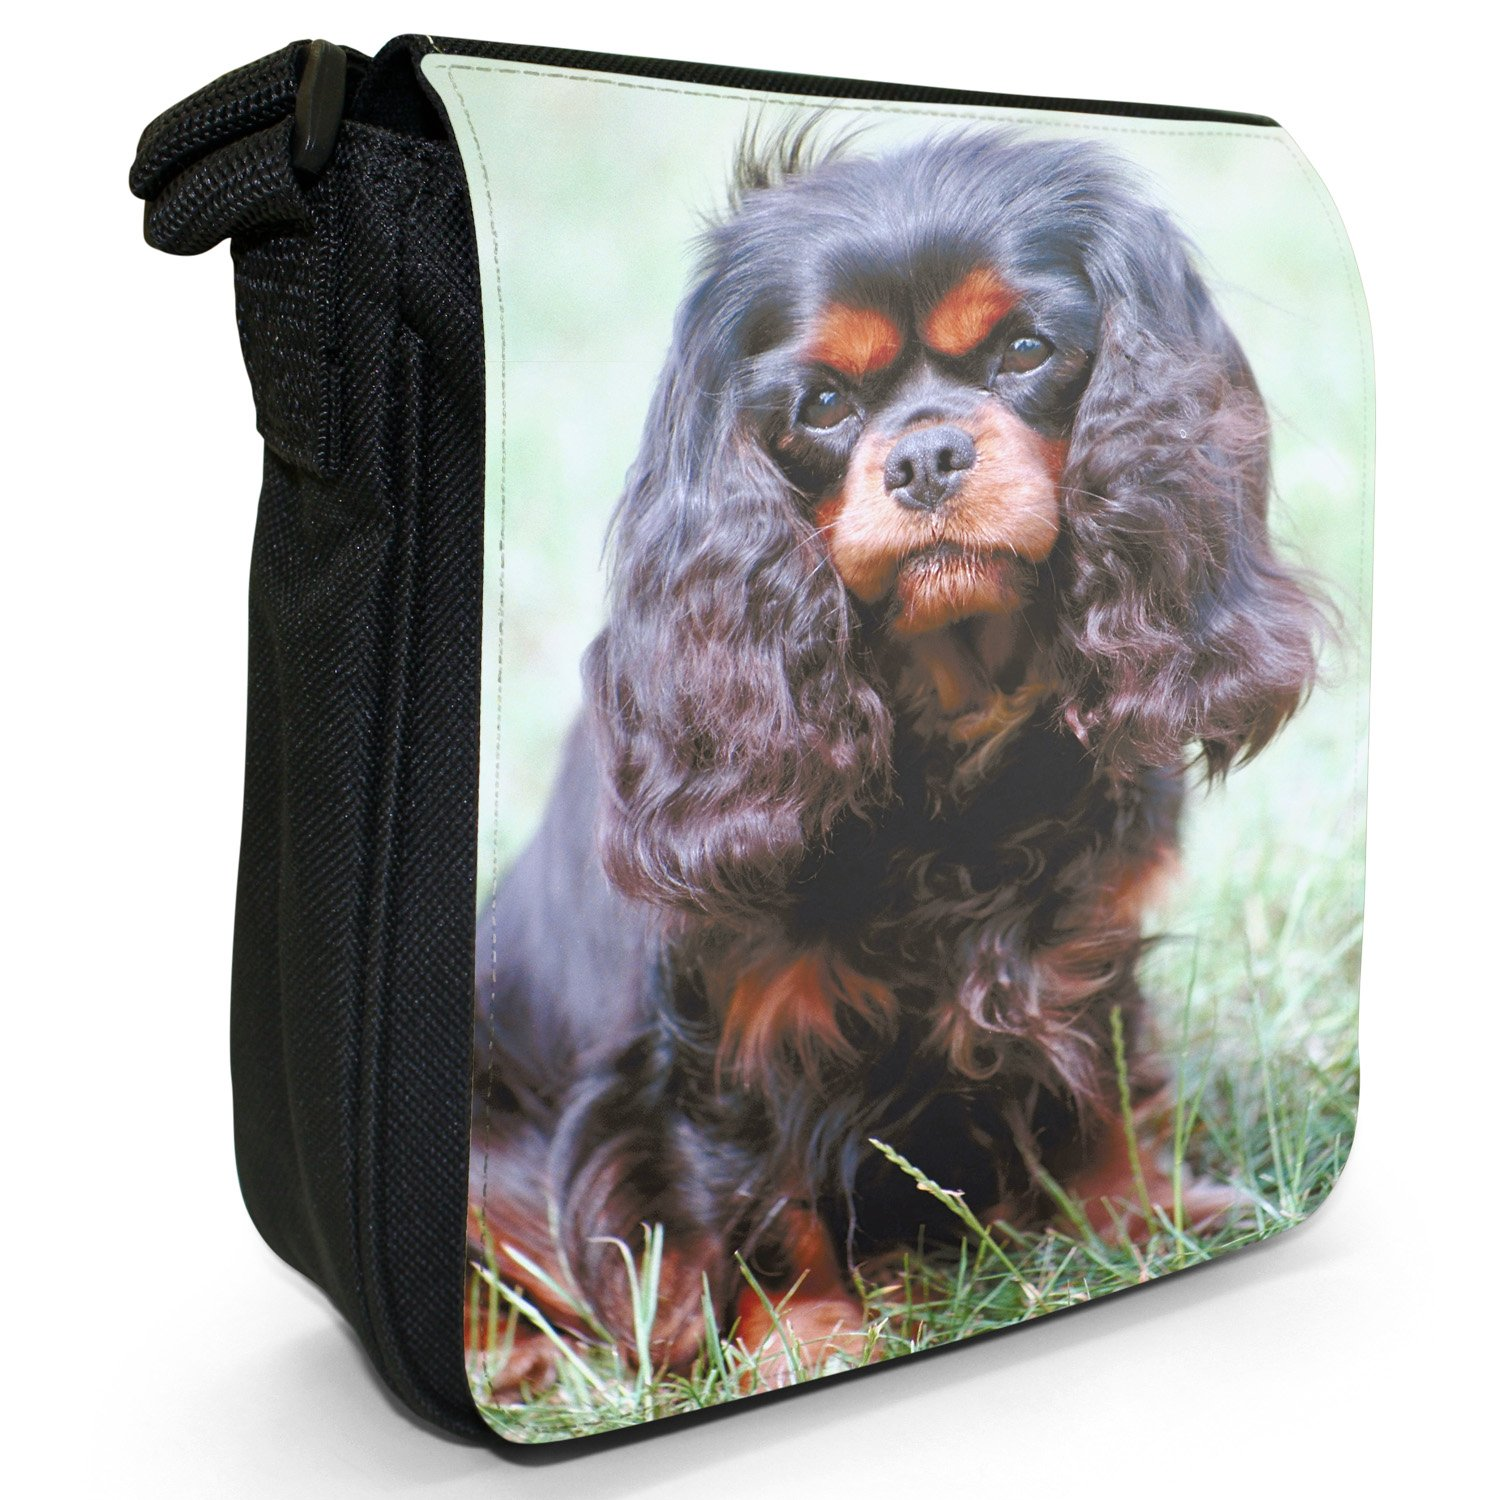 Cavalier King Charles Spaniel Dog Sitting Small Black Canvas Shoulder Bag / Handbag Snuggle